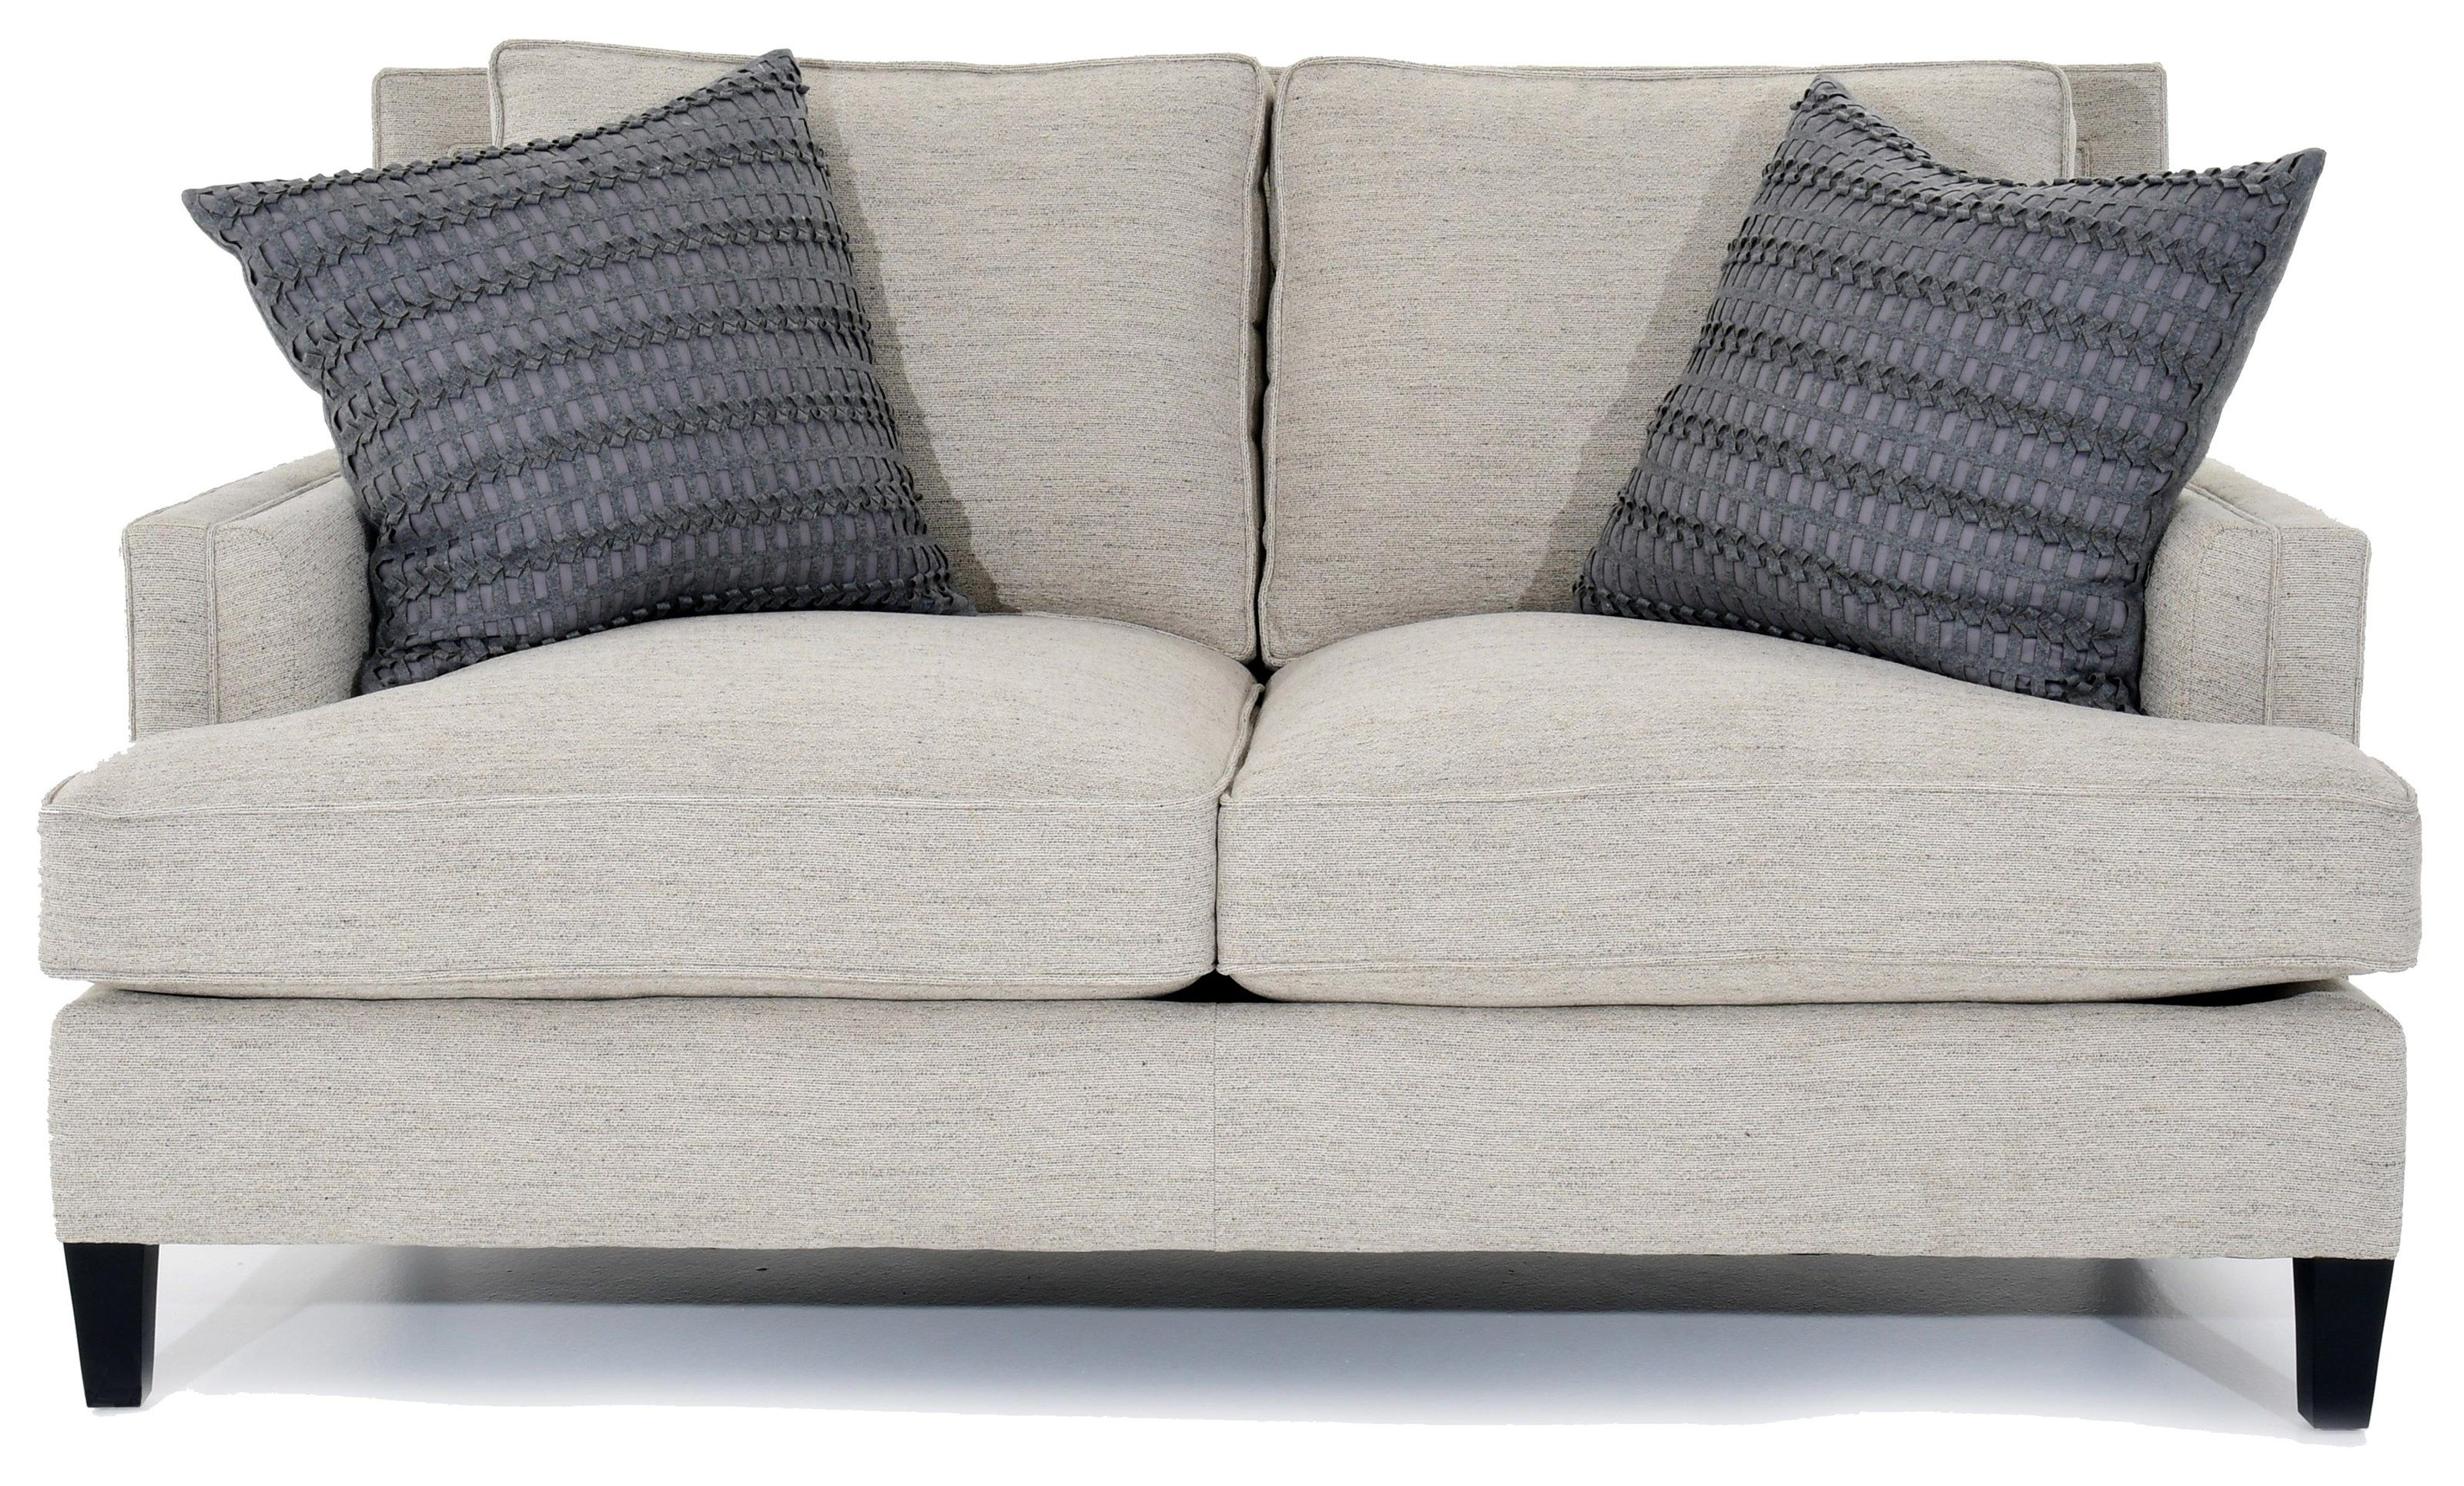 Miraculous Addison Loveseat With Track Arms By Bernhardt Furniture Andrewgaddart Wooden Chair Designs For Living Room Andrewgaddartcom